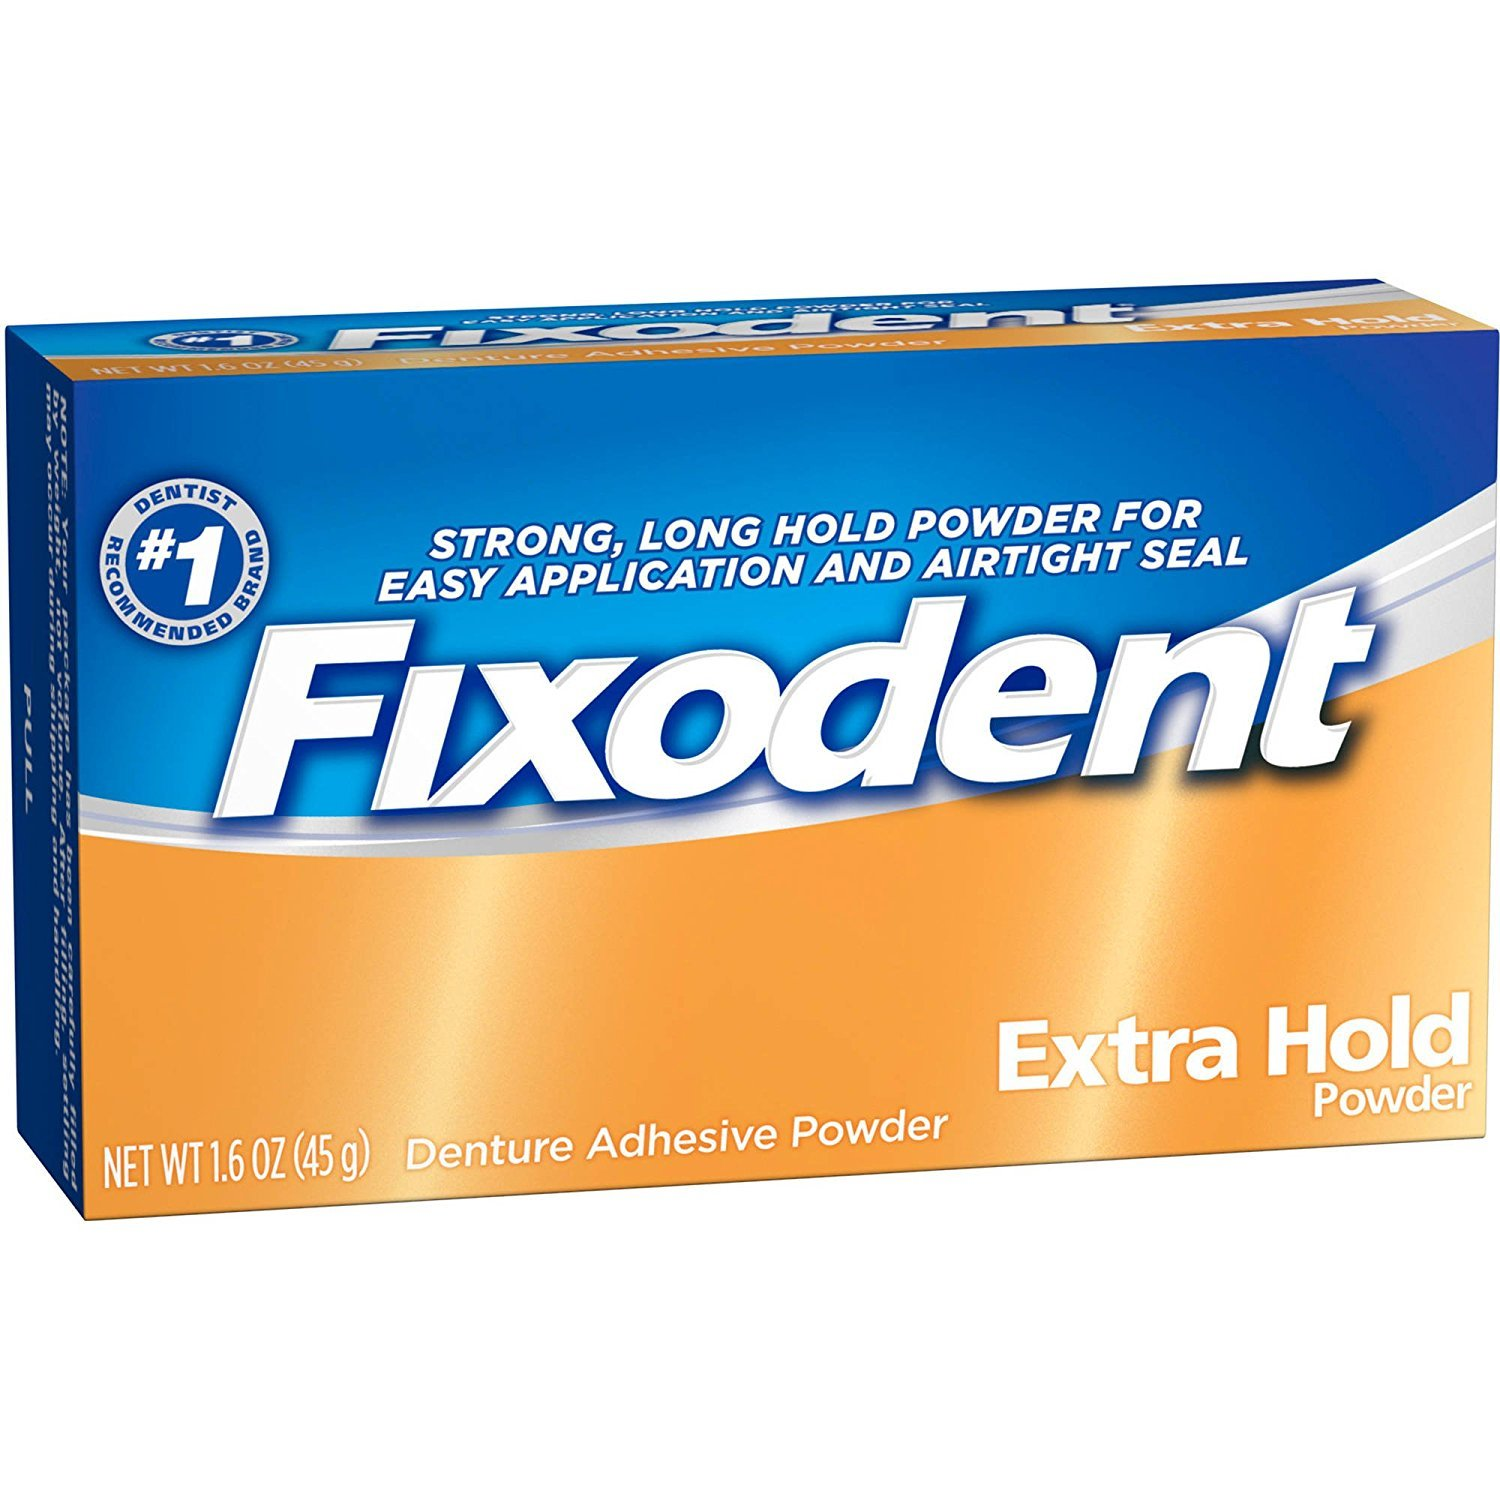 Fixodent Fixodent Denture Adhesive Powder Extra Hold, Extra Hold 1.6 Oz (Pack of 3) 076660725362